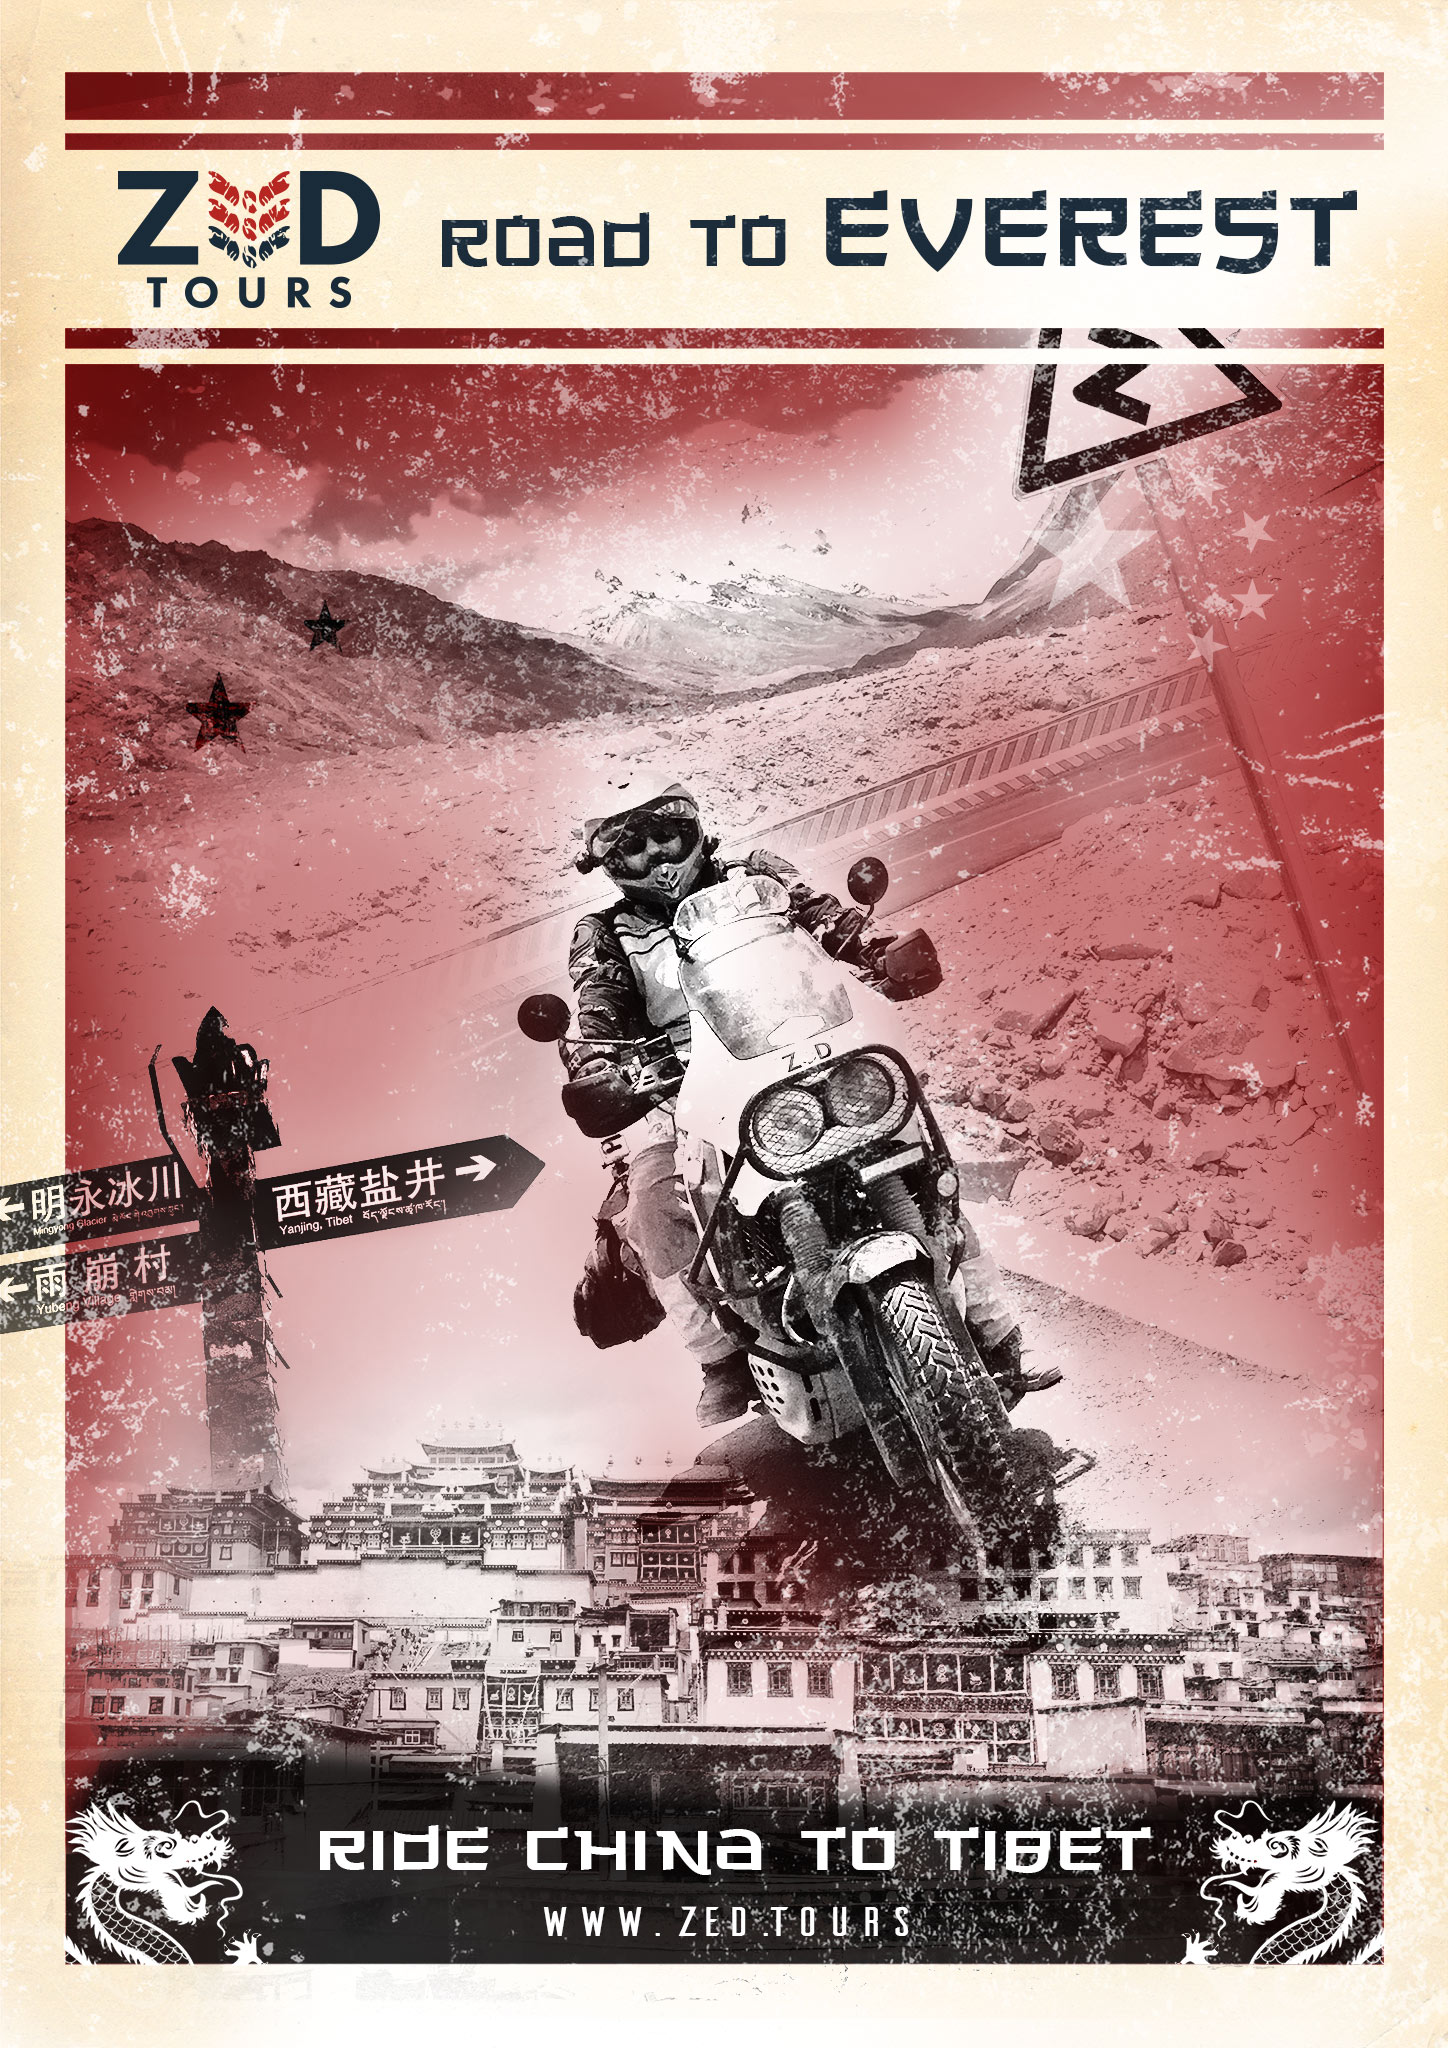 The Road to Everest - Zed Tours Motorcycle Expedition